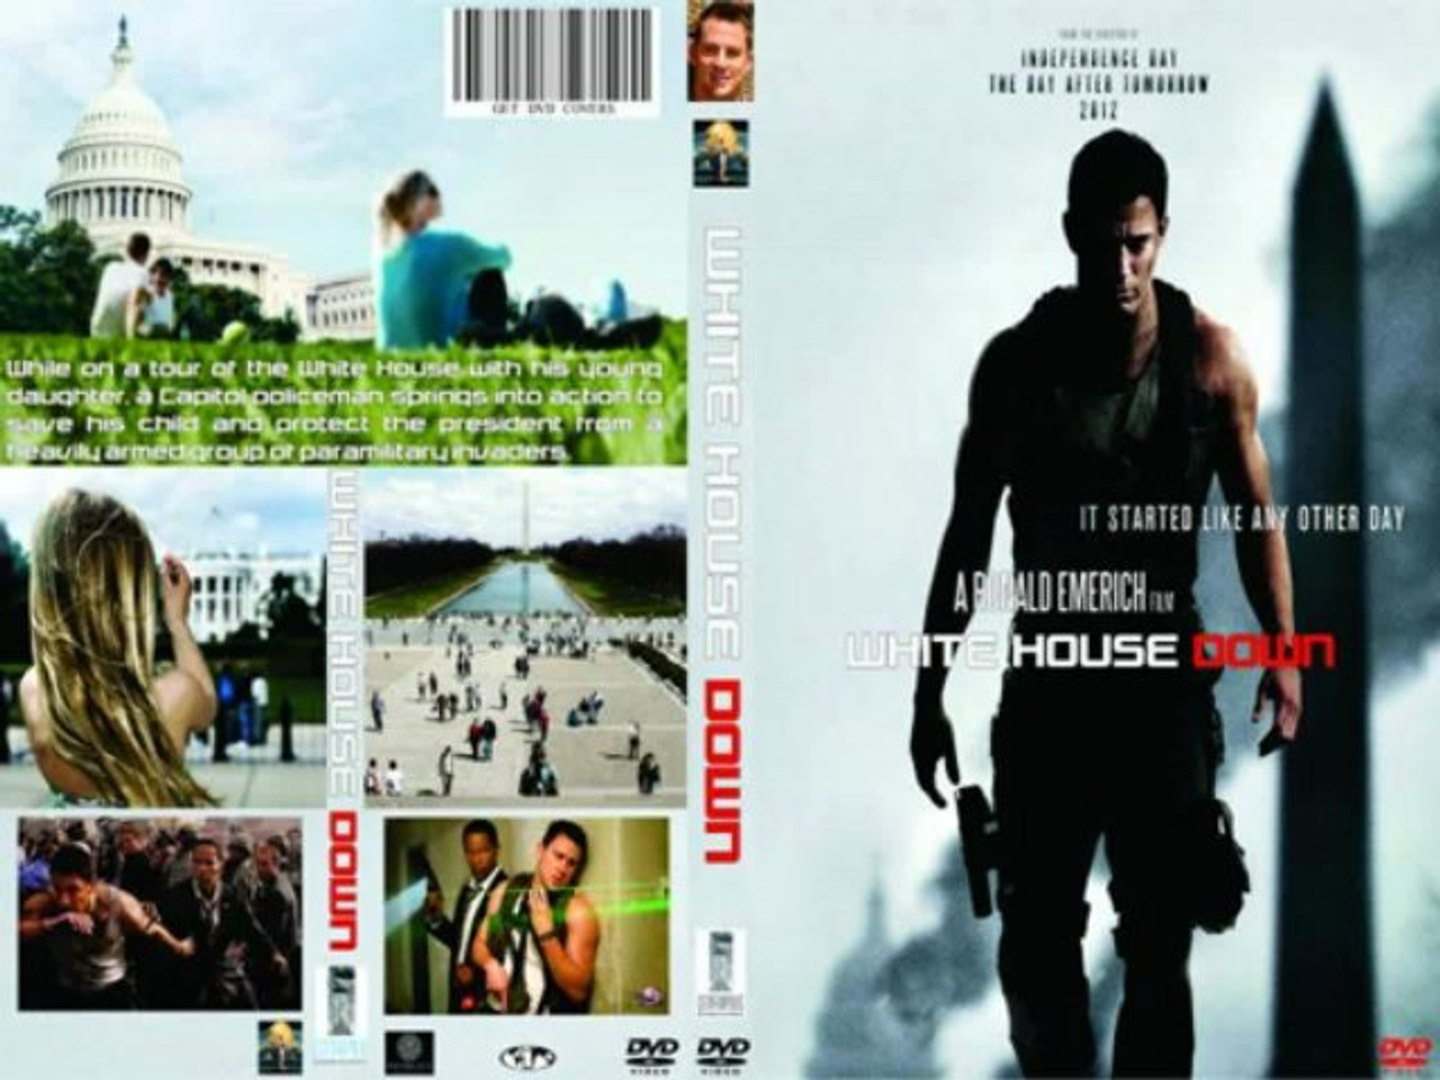 FULL Movie ONLINE White House Down  ++!!@@Watch FREE Movie++ with High Definition 720p